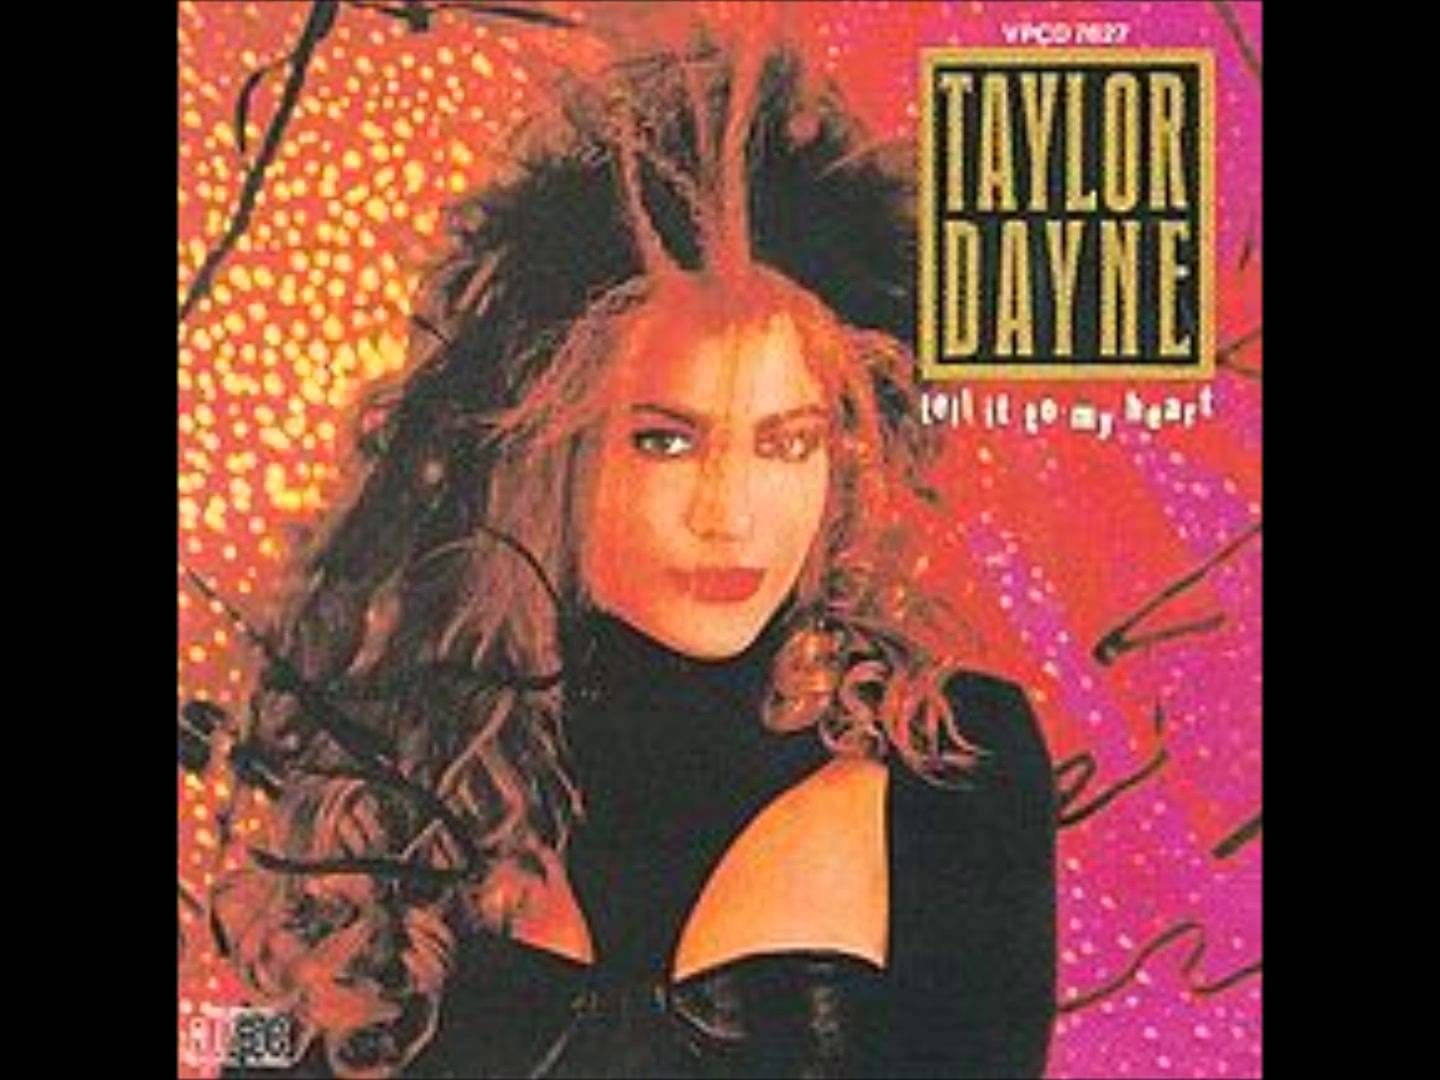 Taylor Dayne I Ll Always Love You Taylor Dayne Ill Always Love You Album Cover Art